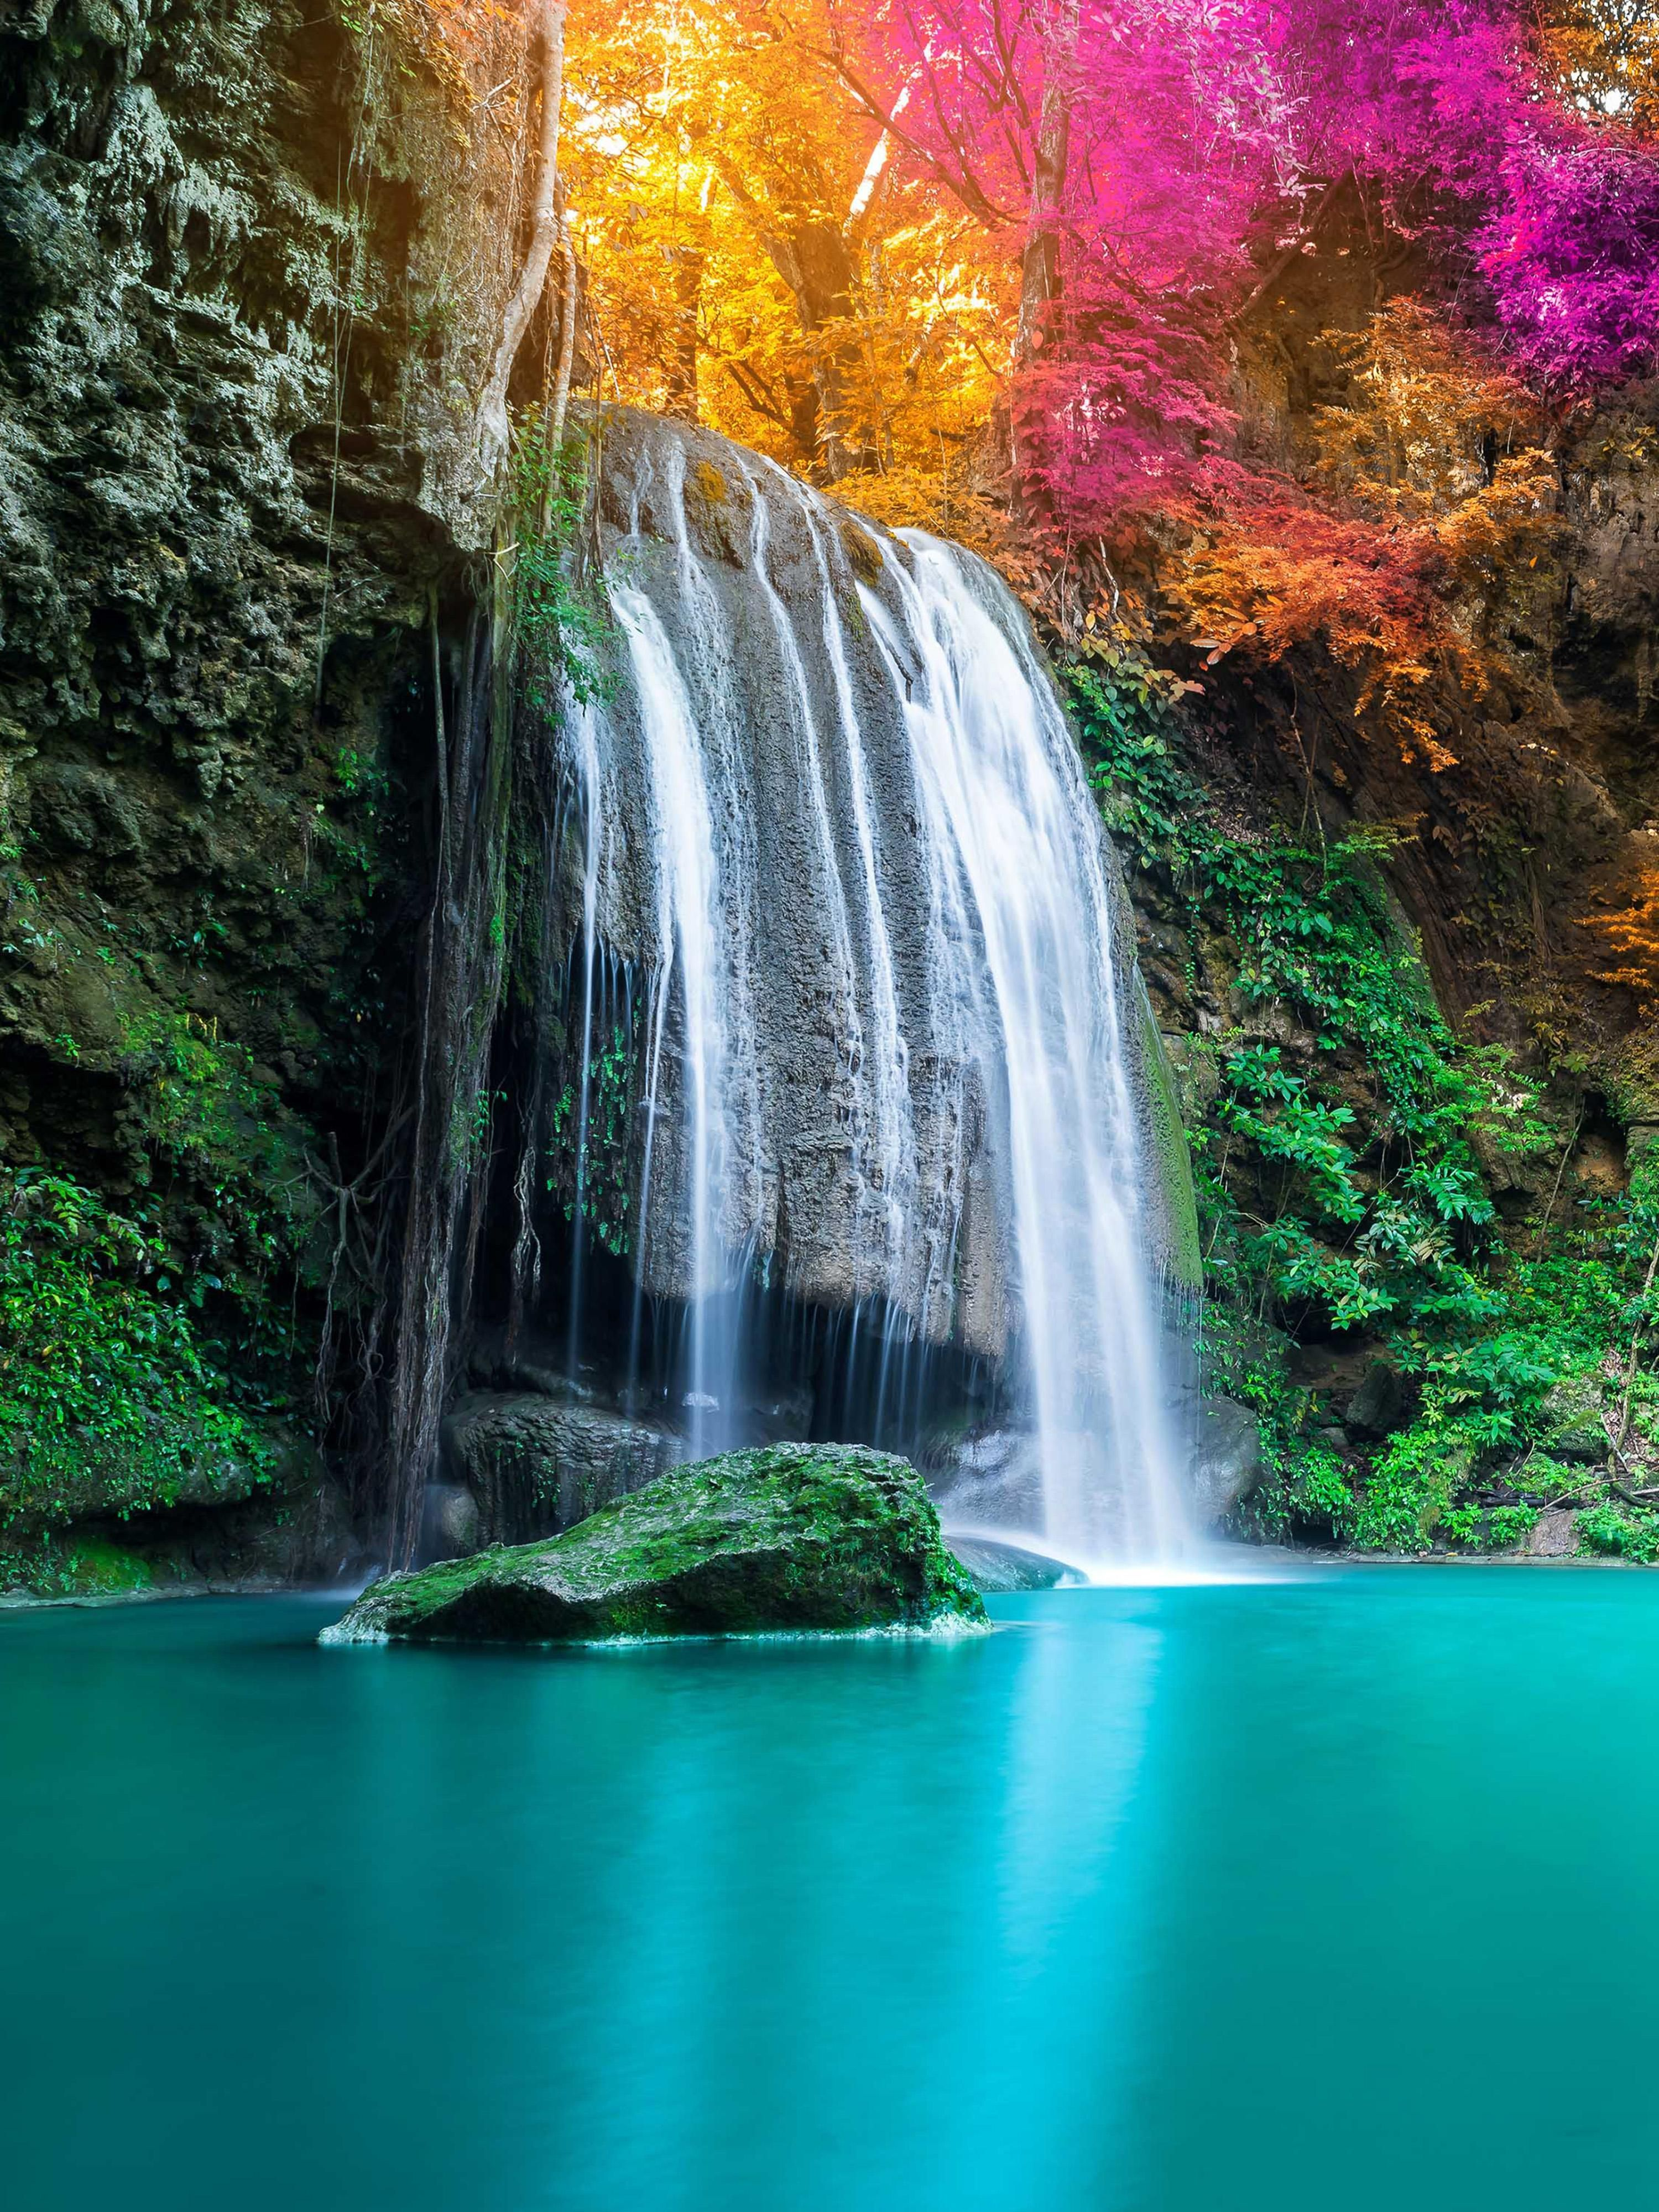 Incredible Waterfall At Ubud Indonesia Oc 3000 X 4000 Https Ift Tt 2efifvw Beautiful Nature Beautiful Landscapes Nature Photography